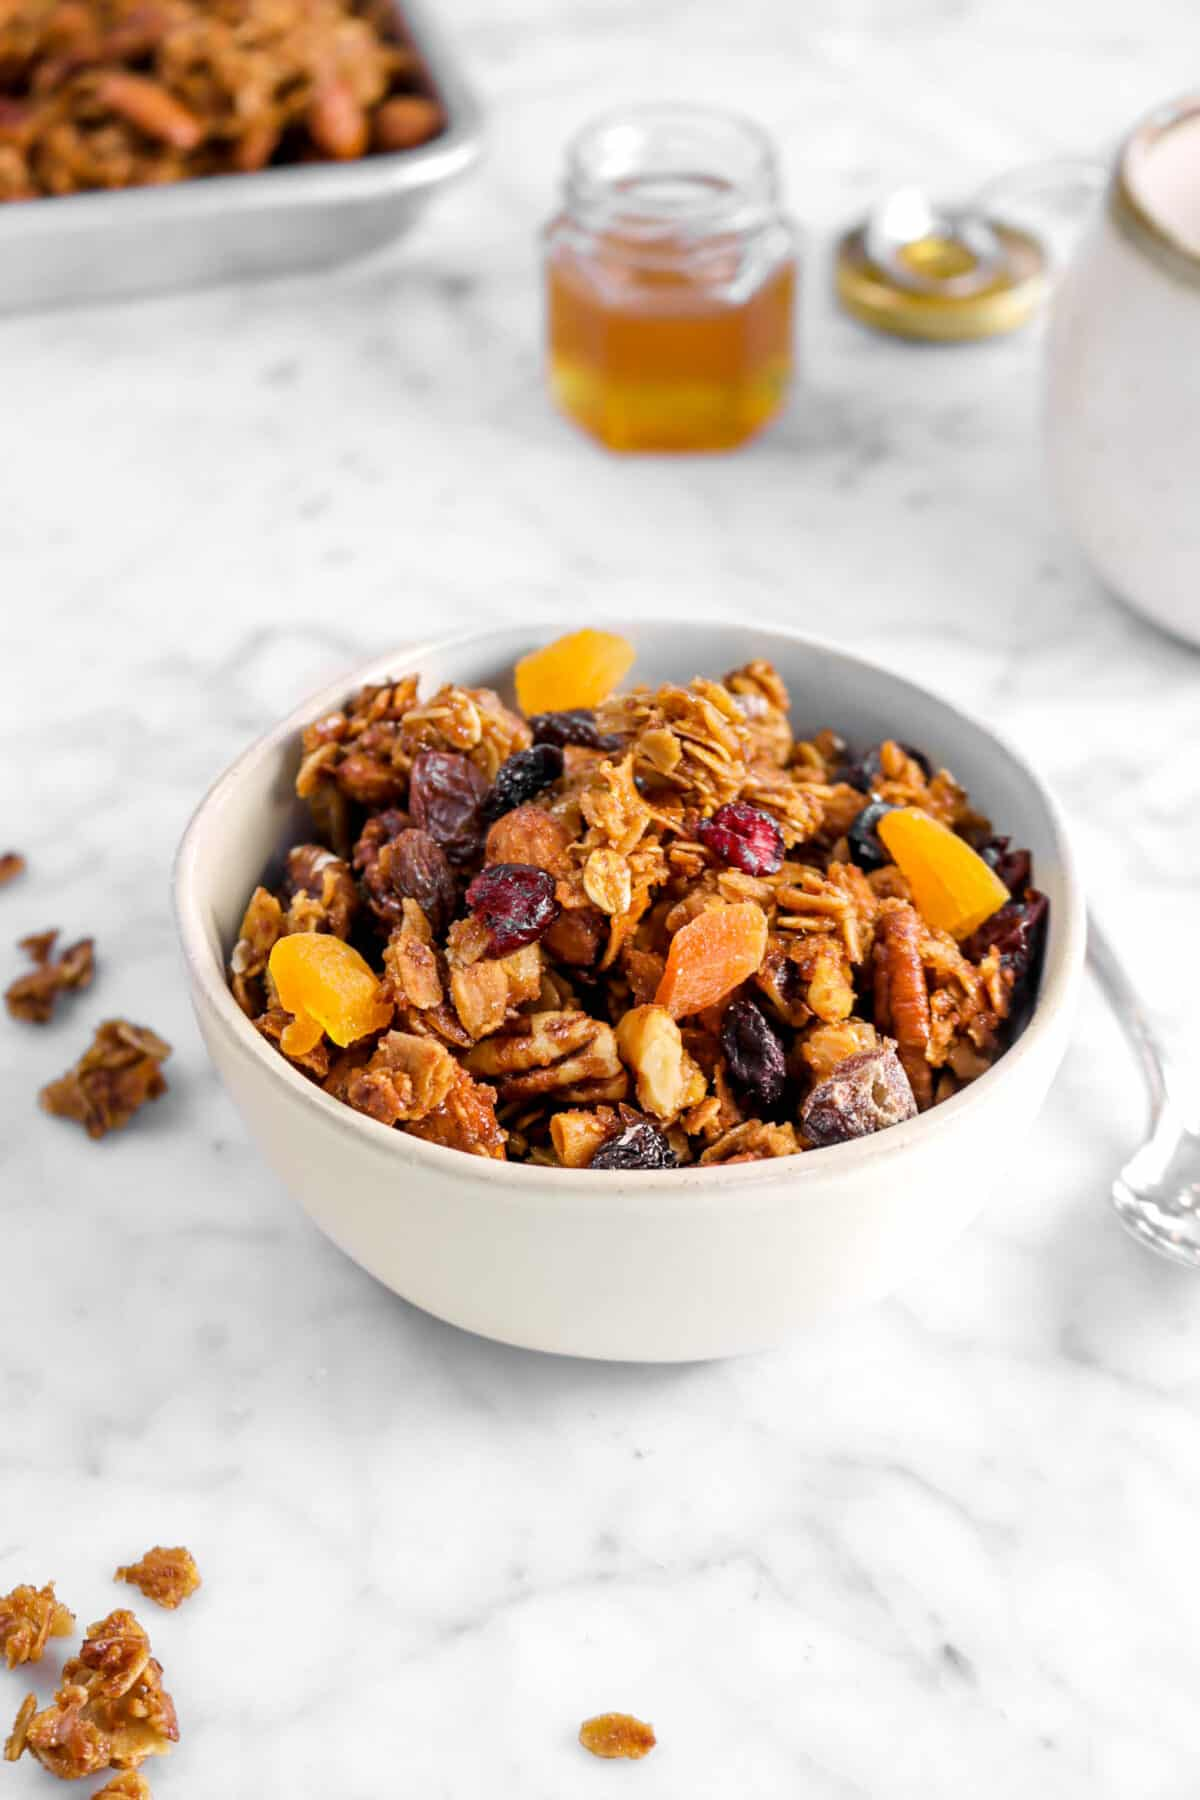 small bowl of granola with dried fruit on with small pot of honey behind